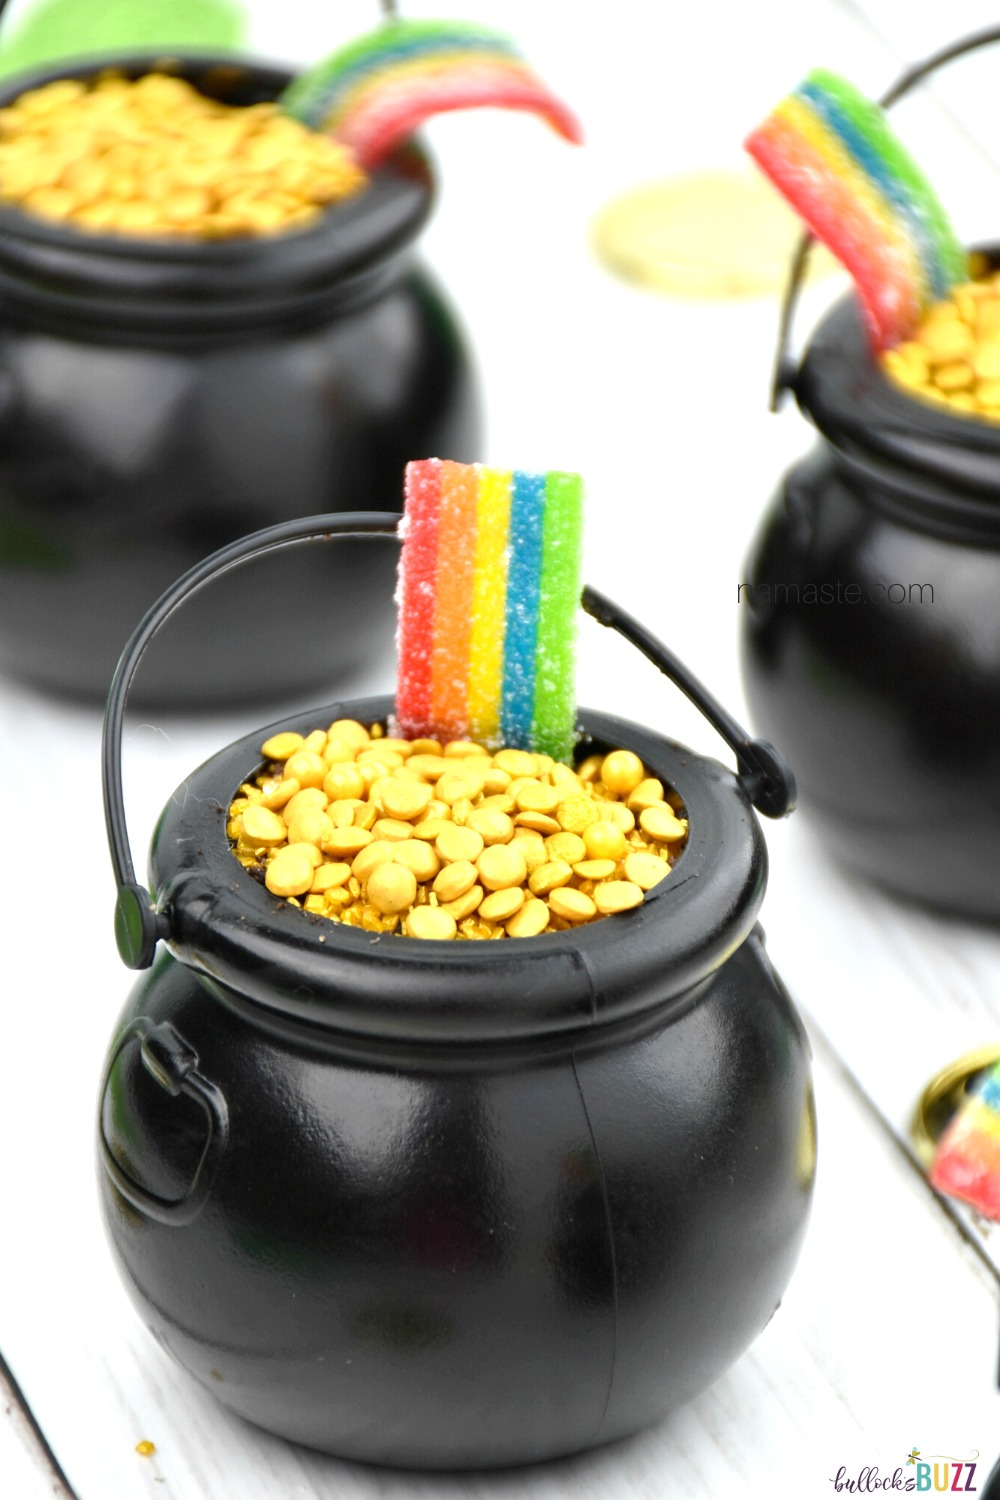 Layers of rich, chocolatey cookies and creamy chocolate pudding, topped with gold sprinkles, and sour rainbow candy make these St. Patrick's Day Pot of Gold Dirt Cups taste as good as they look! #recipes #StPatricksDay #bullocksbuzz